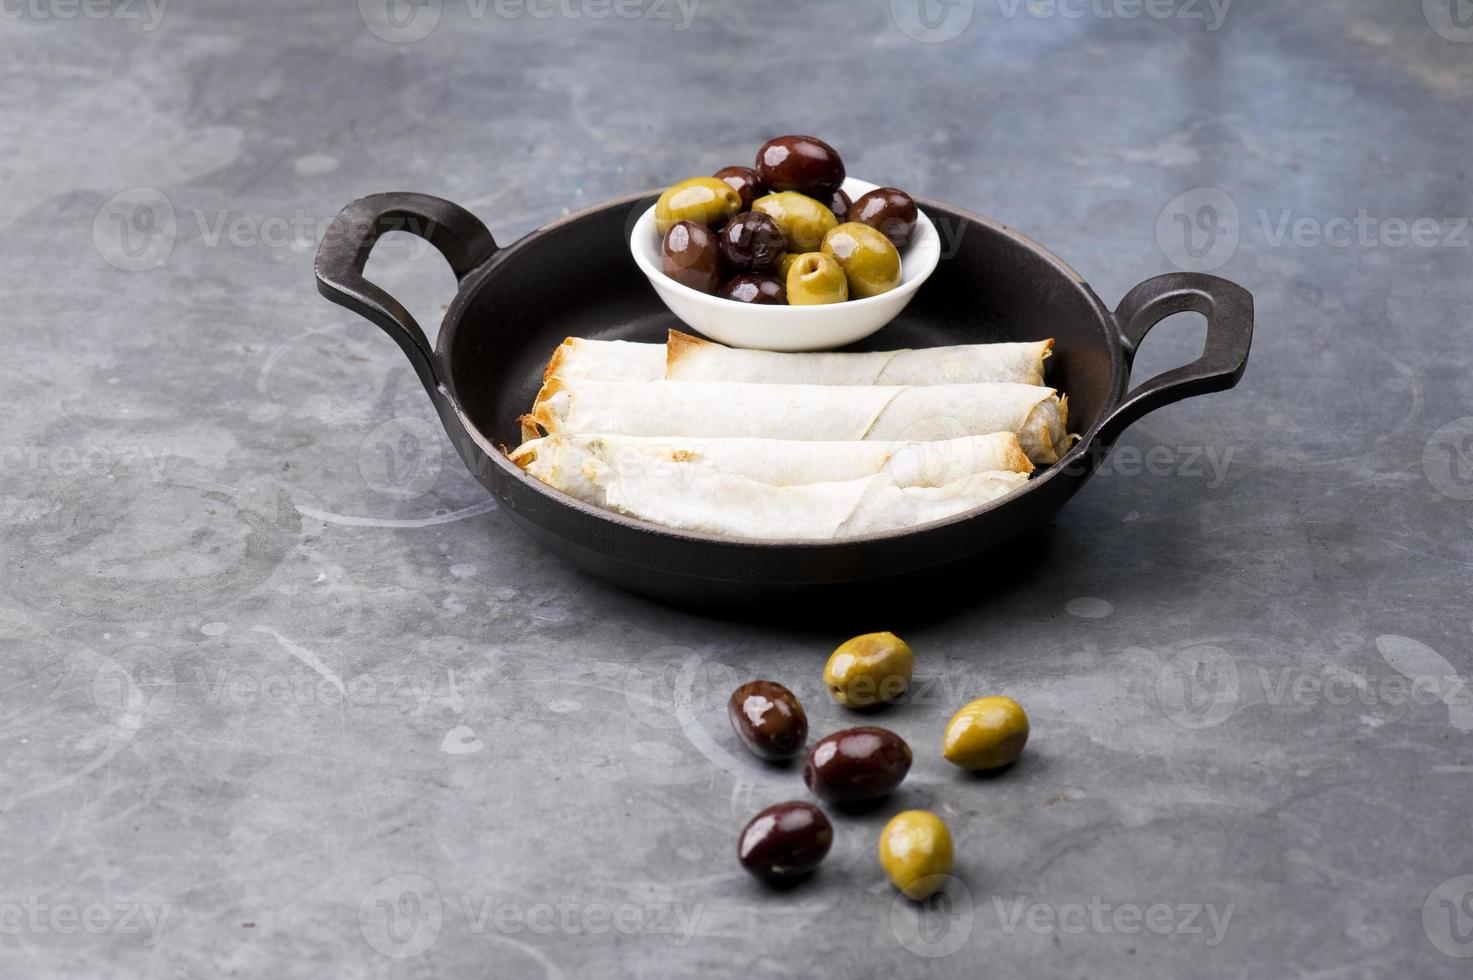 Cheese rolls plate with olives served in a black pan photo